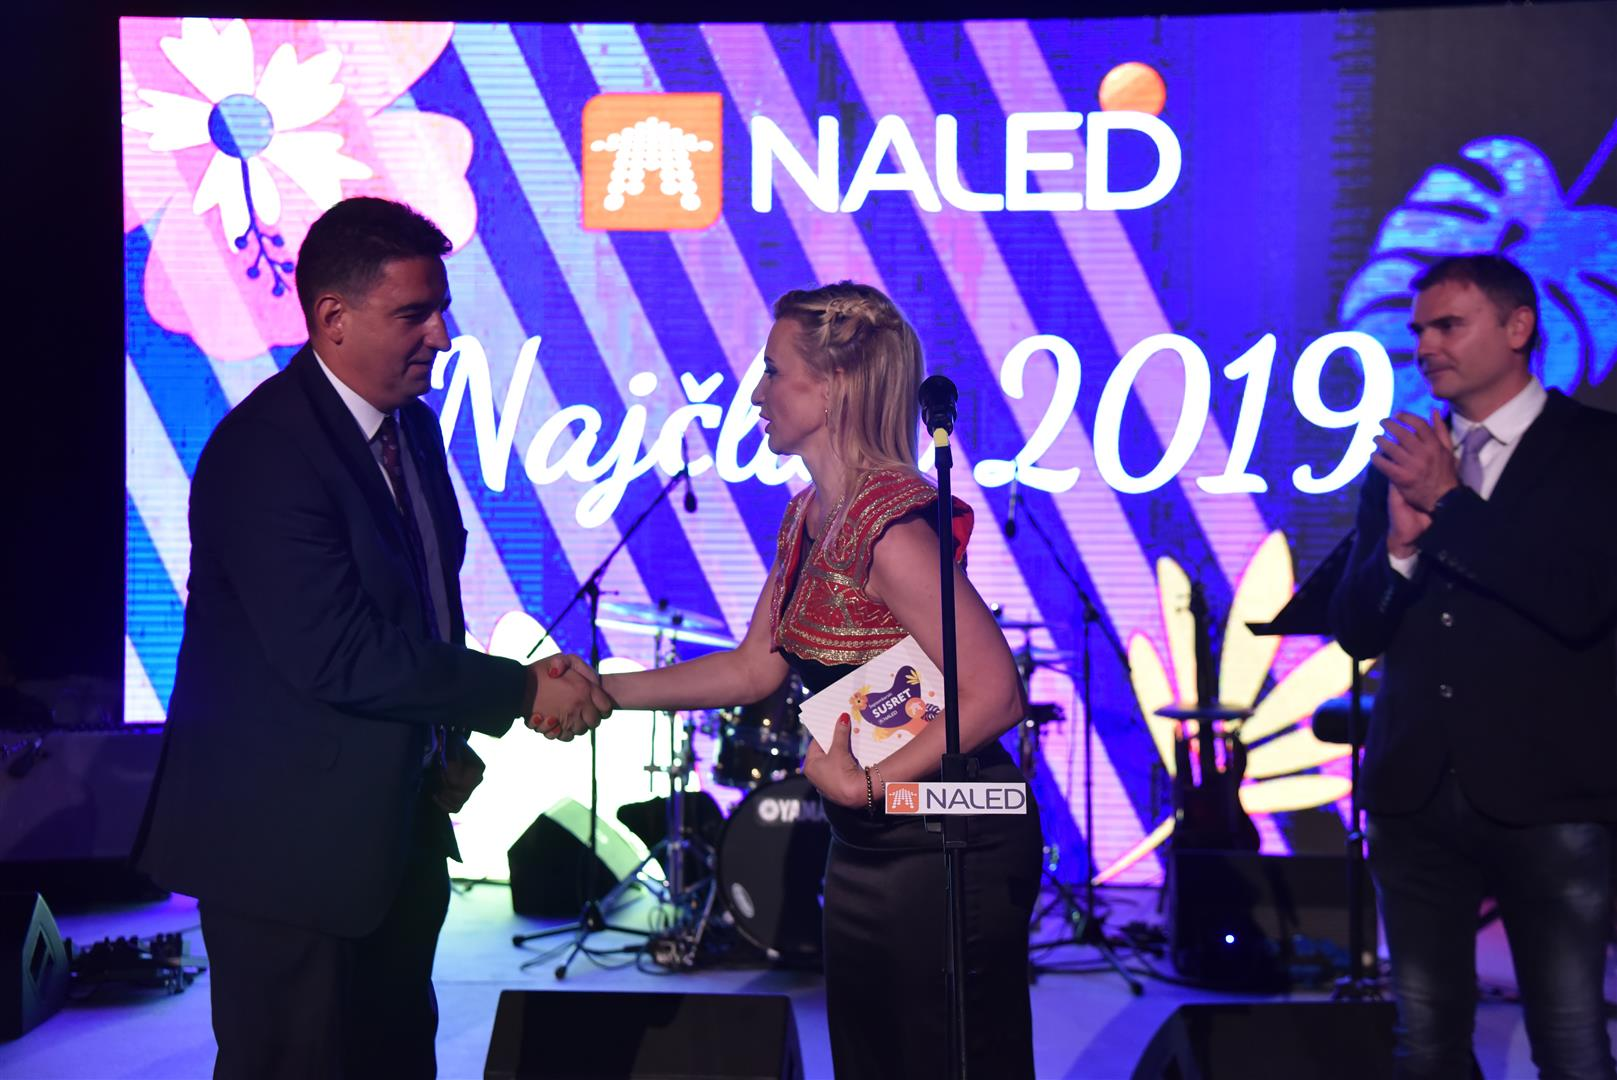 More than 800 members and partners at NALED's September Gathering